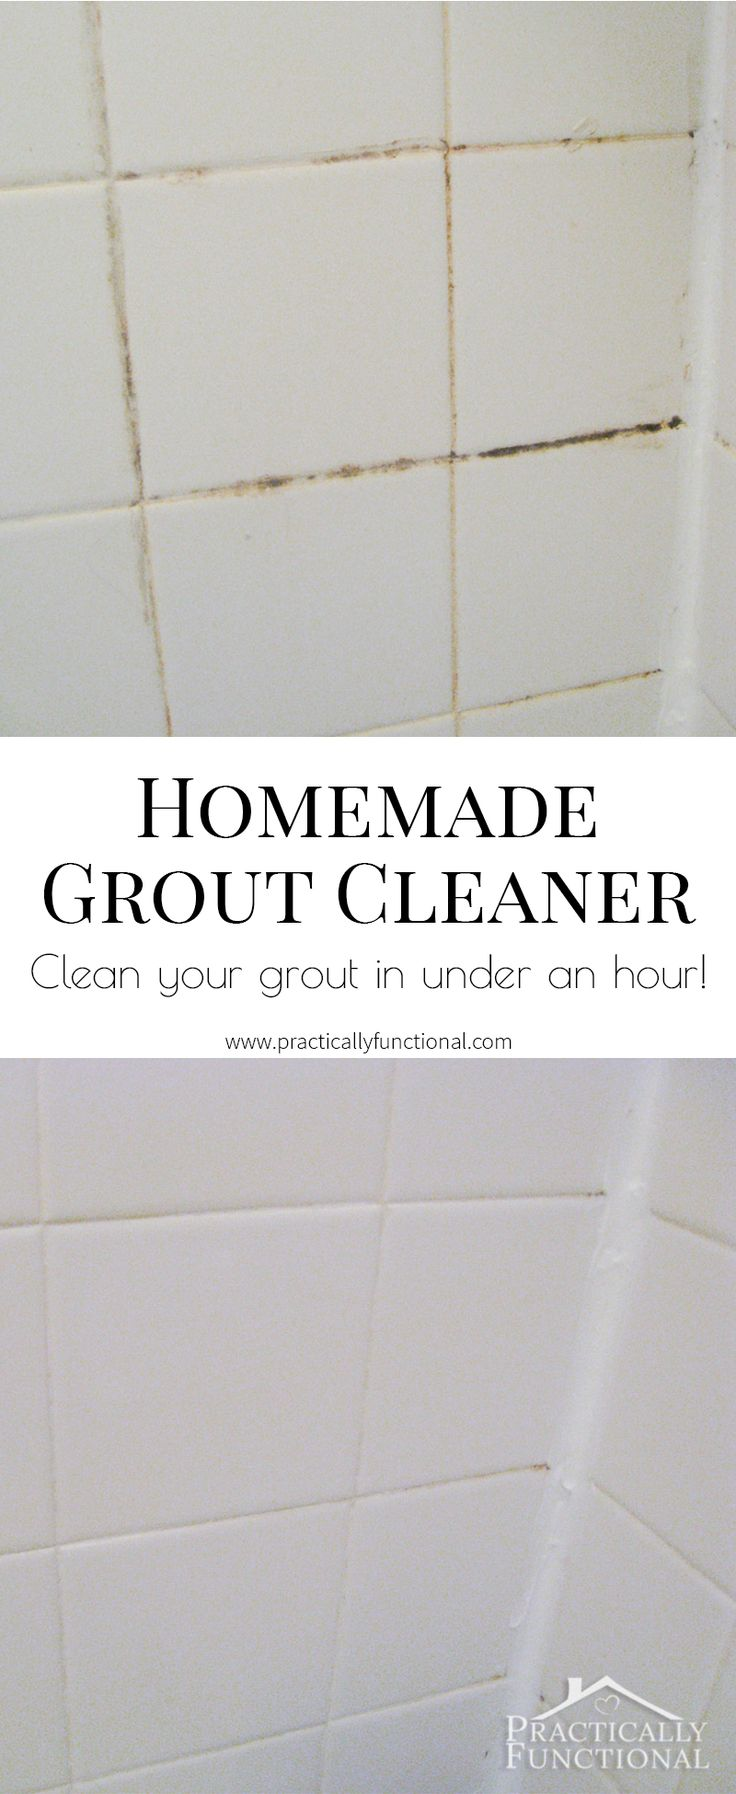 1000+ images about Cleaners on Pinterest | Soap scum, Bleach and ...